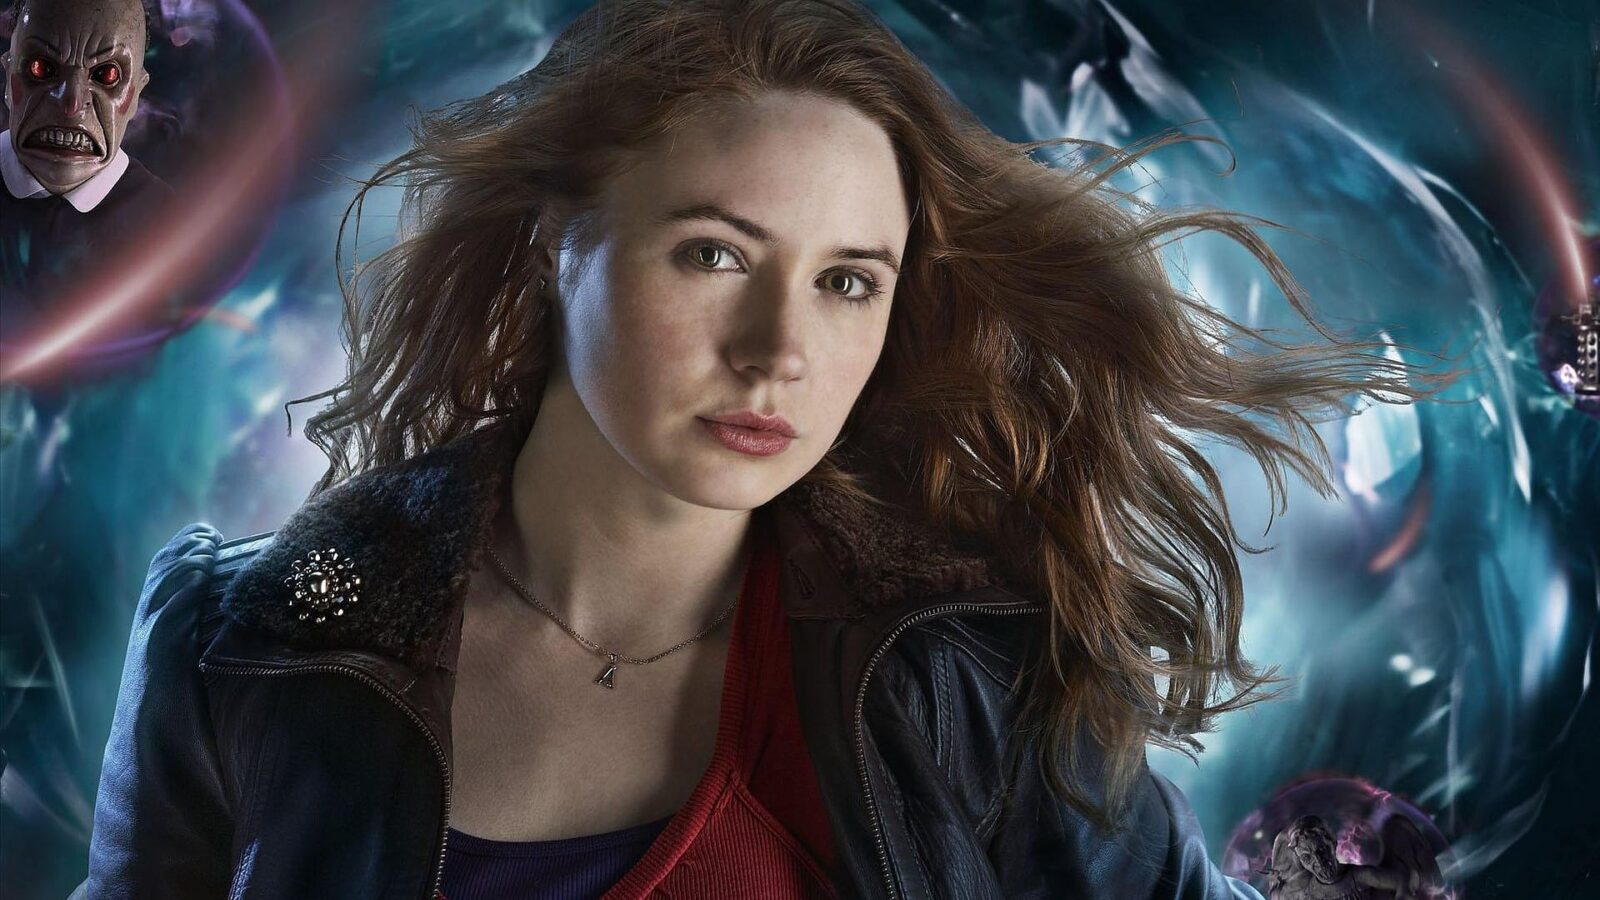 Karen Gillan art background